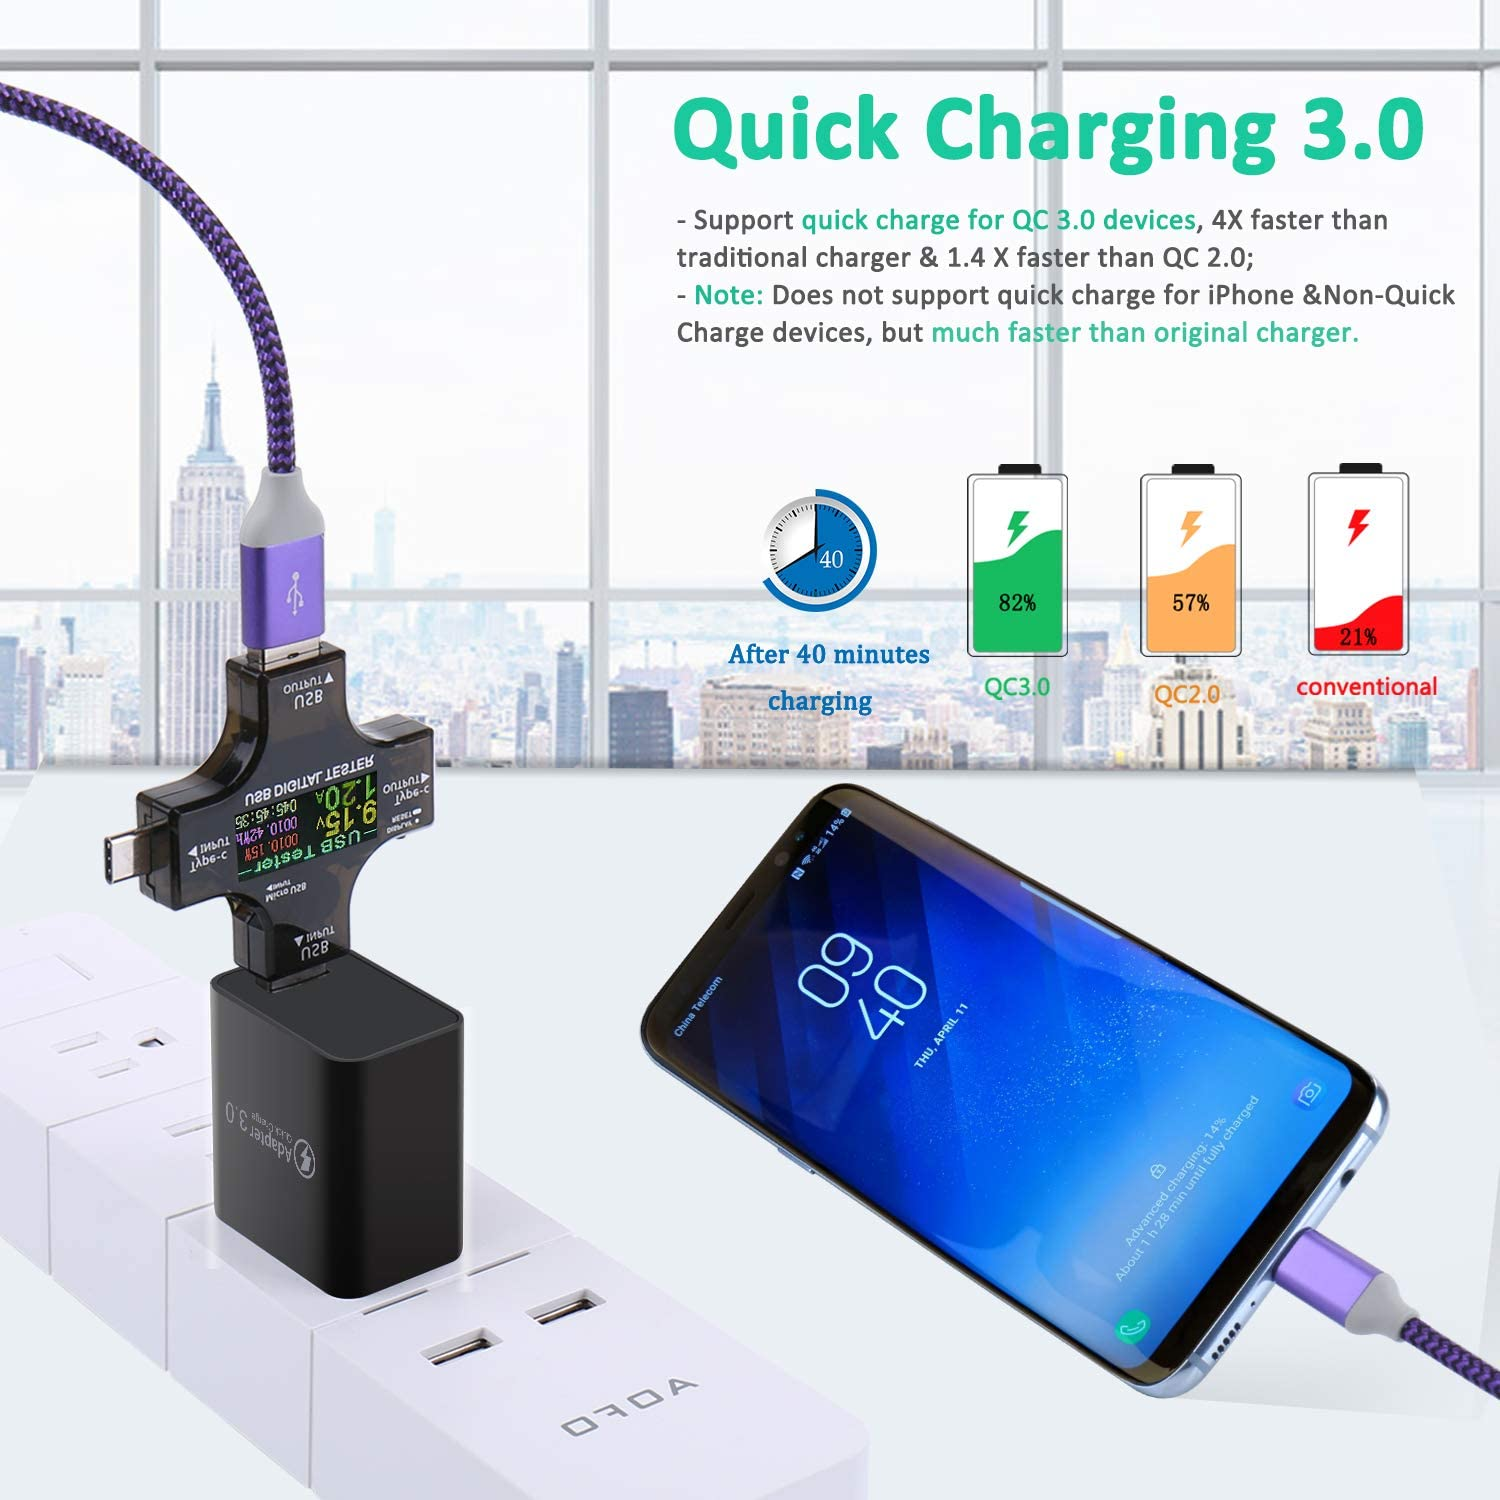 [4-Pack] Quick Charge 3.0 Wall Charger, Besgoods 18W QC 3.0 USB Charger Adapter Fast Charging Block Compatible Wireless Charger, Samsung Galaxy S9 ...